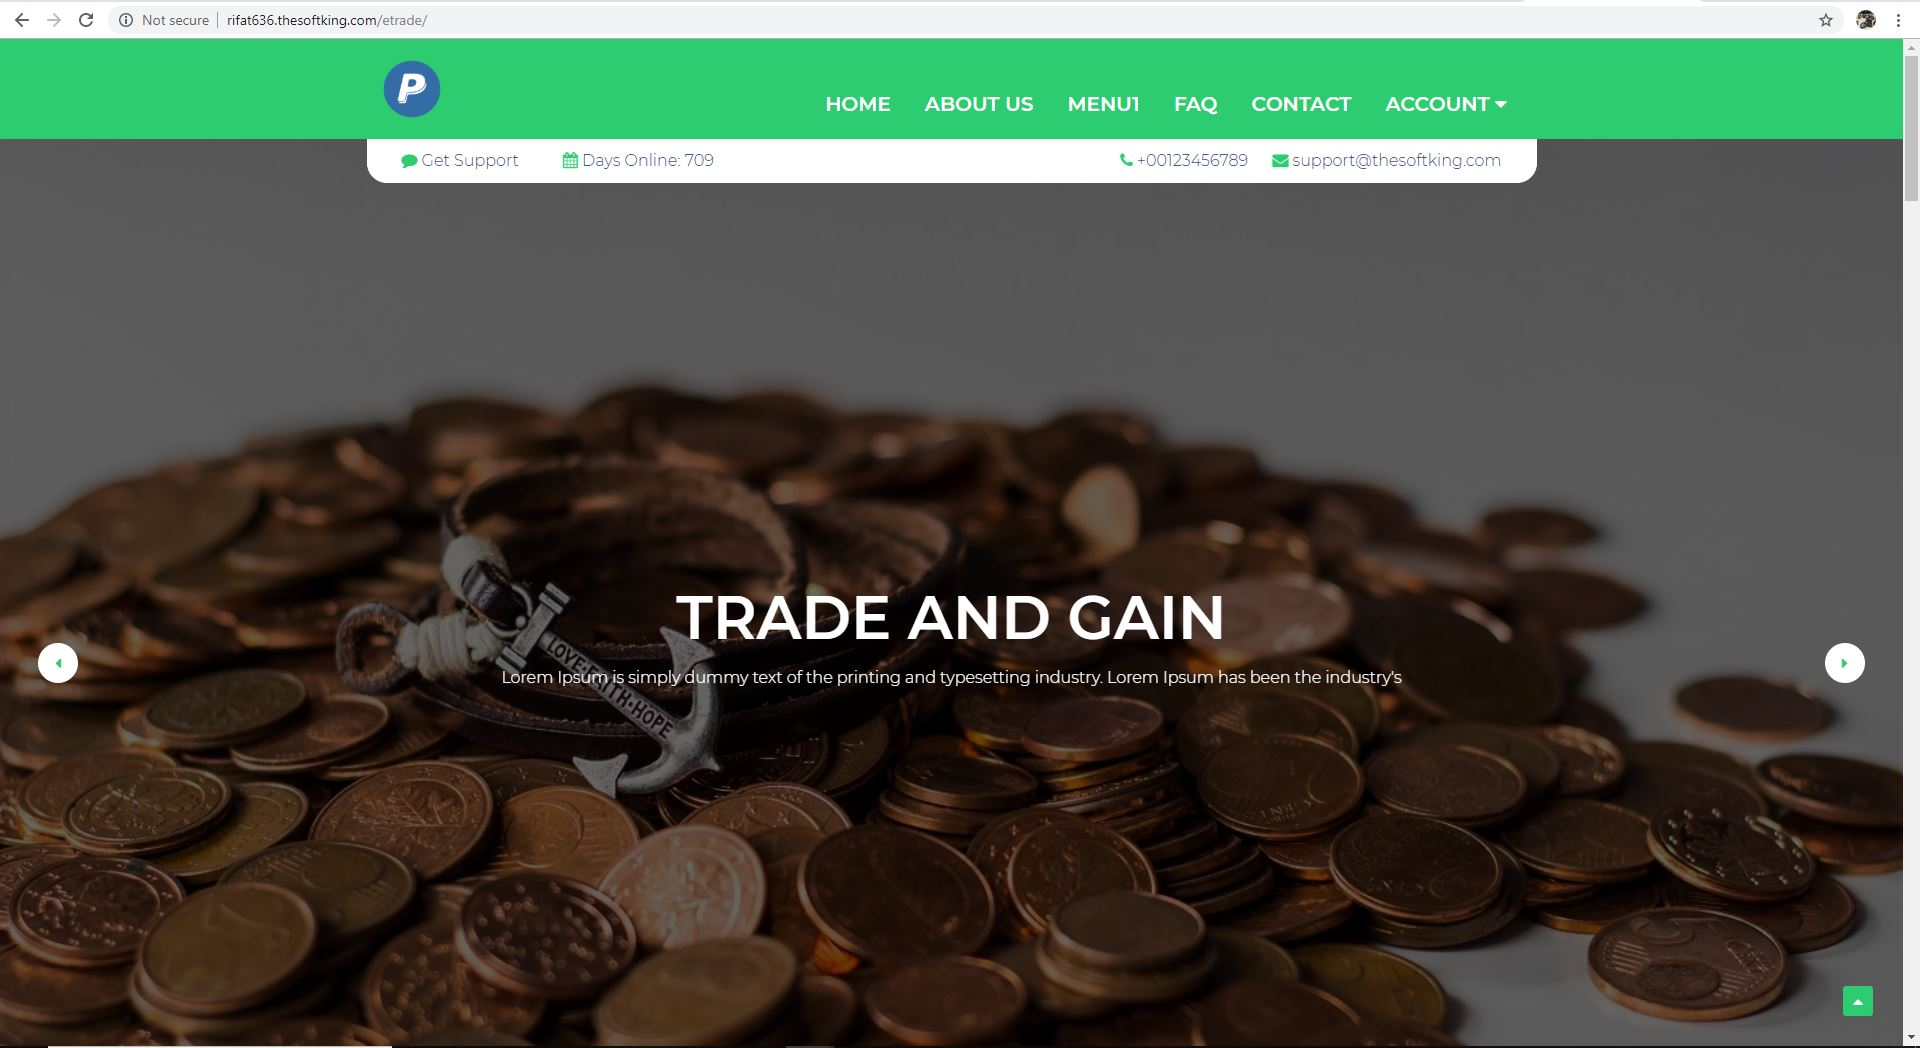 E-Trader Website Full Site for Online Trading Platform